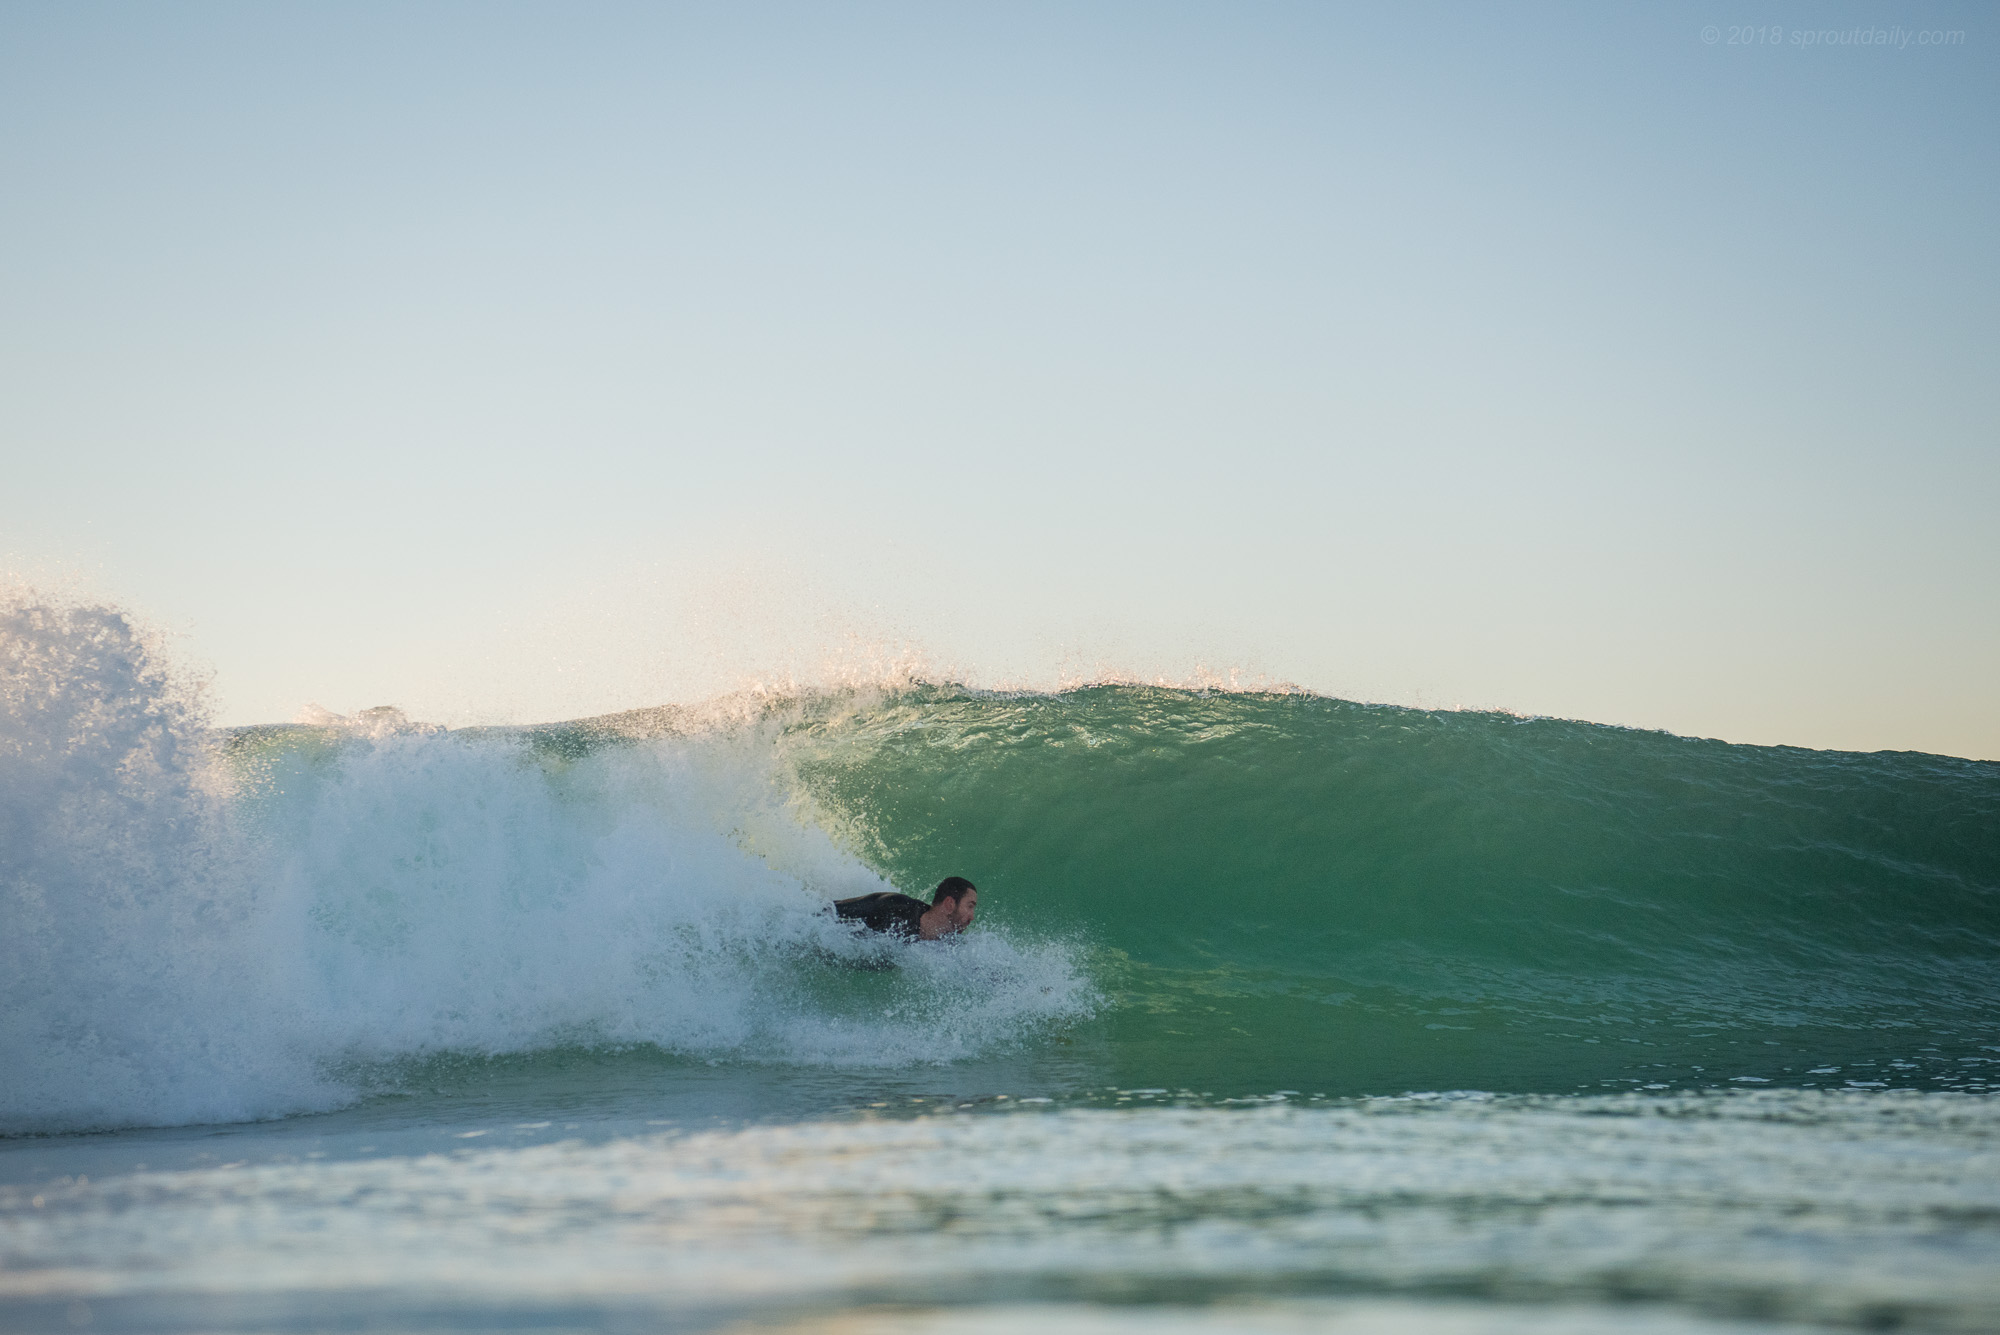 Simplest of Surfing - Good option this morning